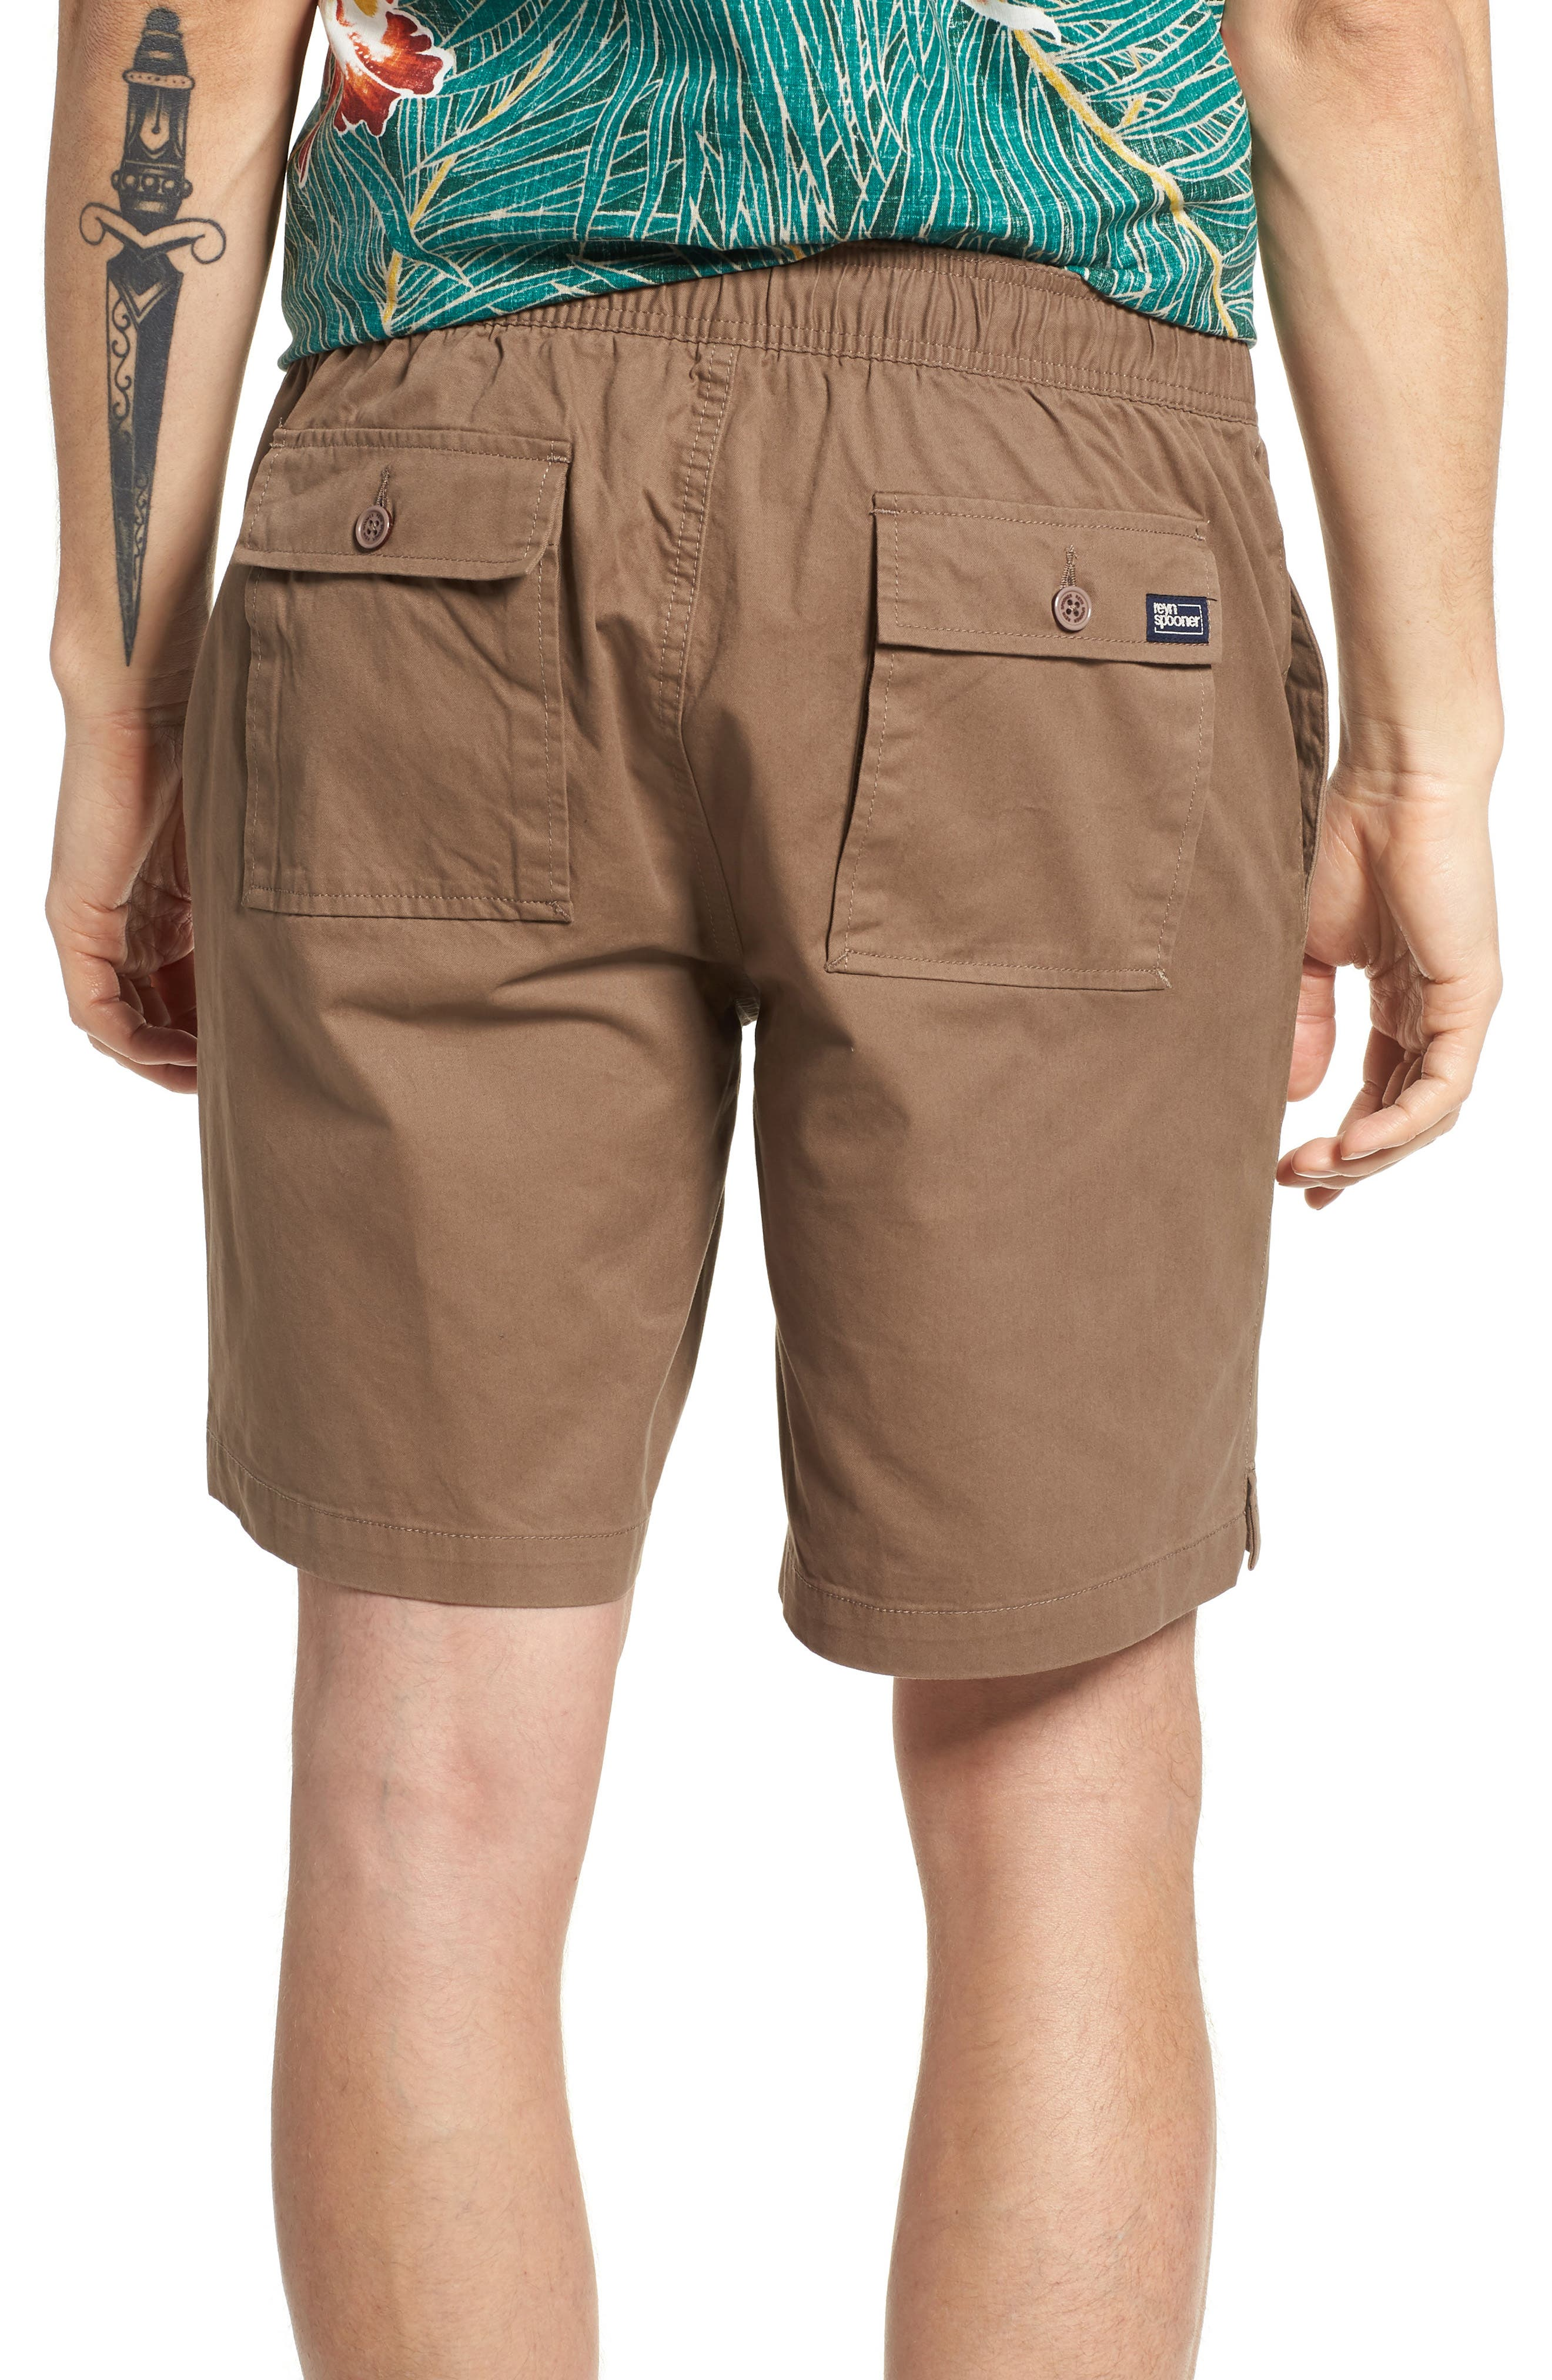 Alternate Image 2  - Reyn Spooner Beach Shorts